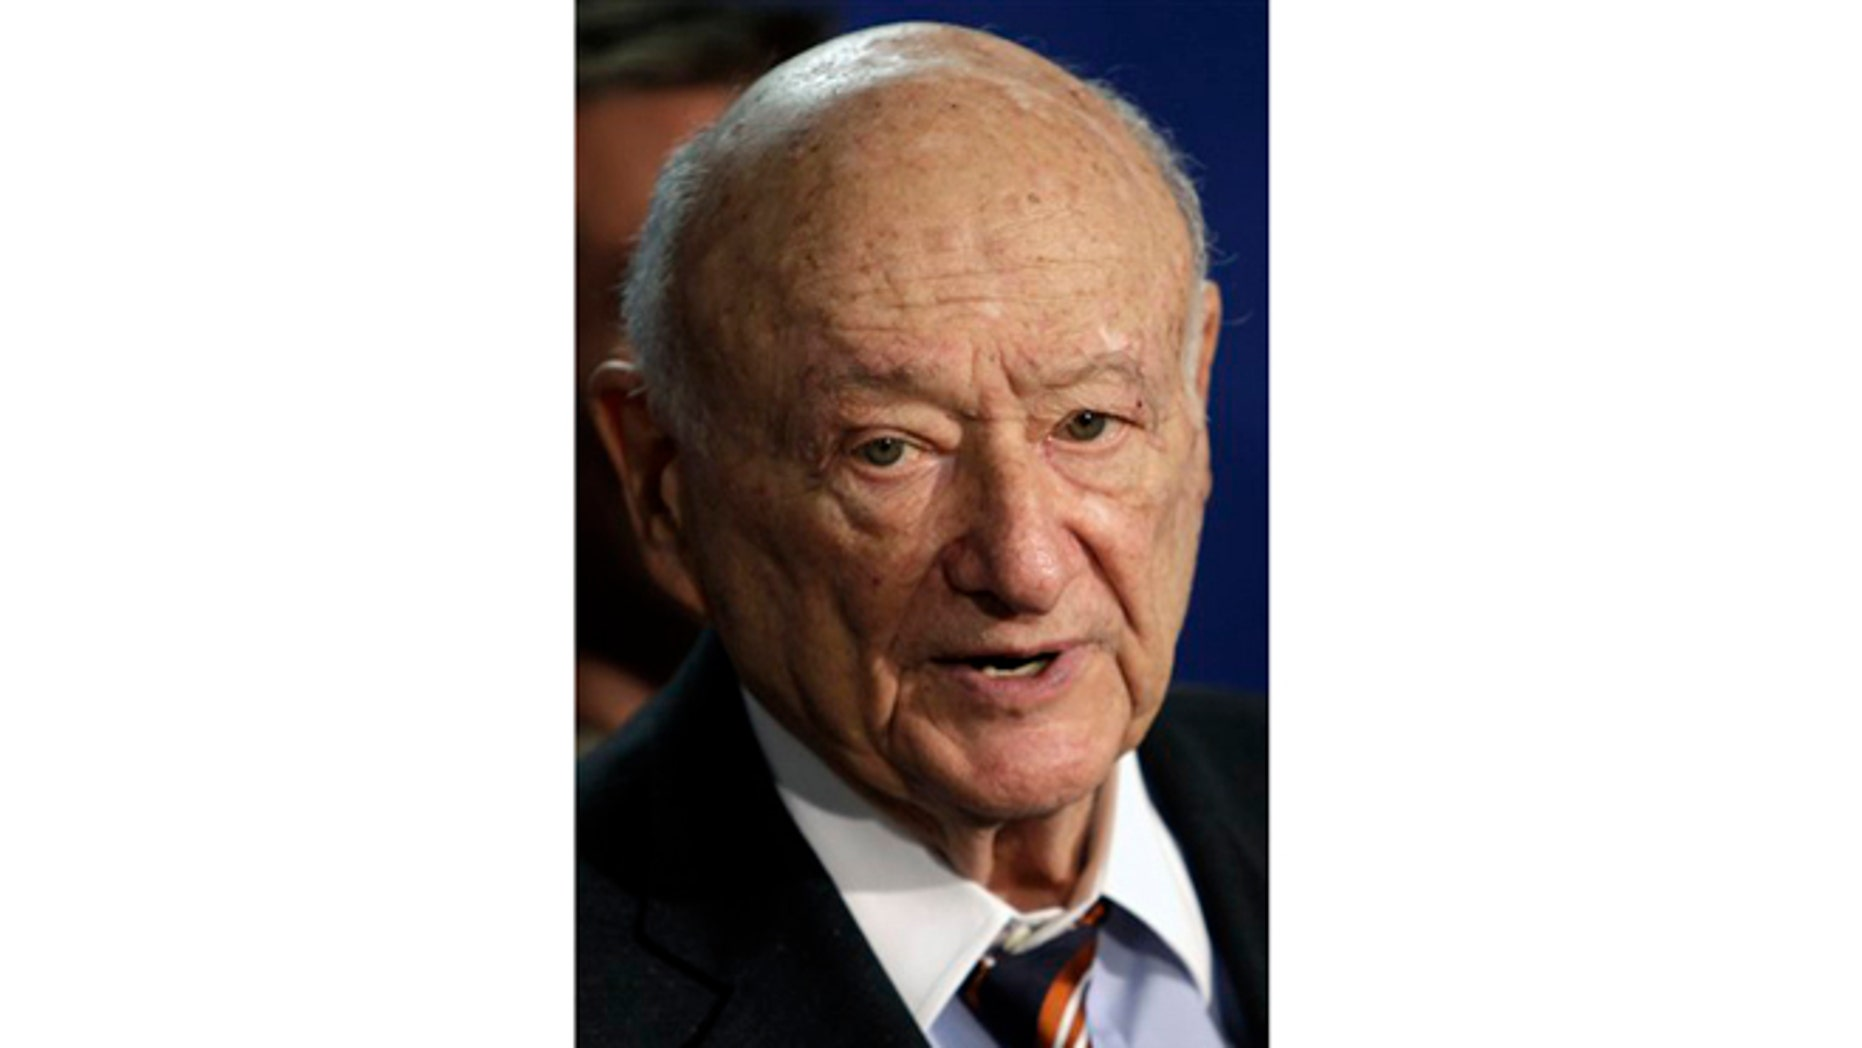 March 1, 2011: Former New York Mayor Ed Koch speaks during a news conference on redistricting in Albany, N.Y.